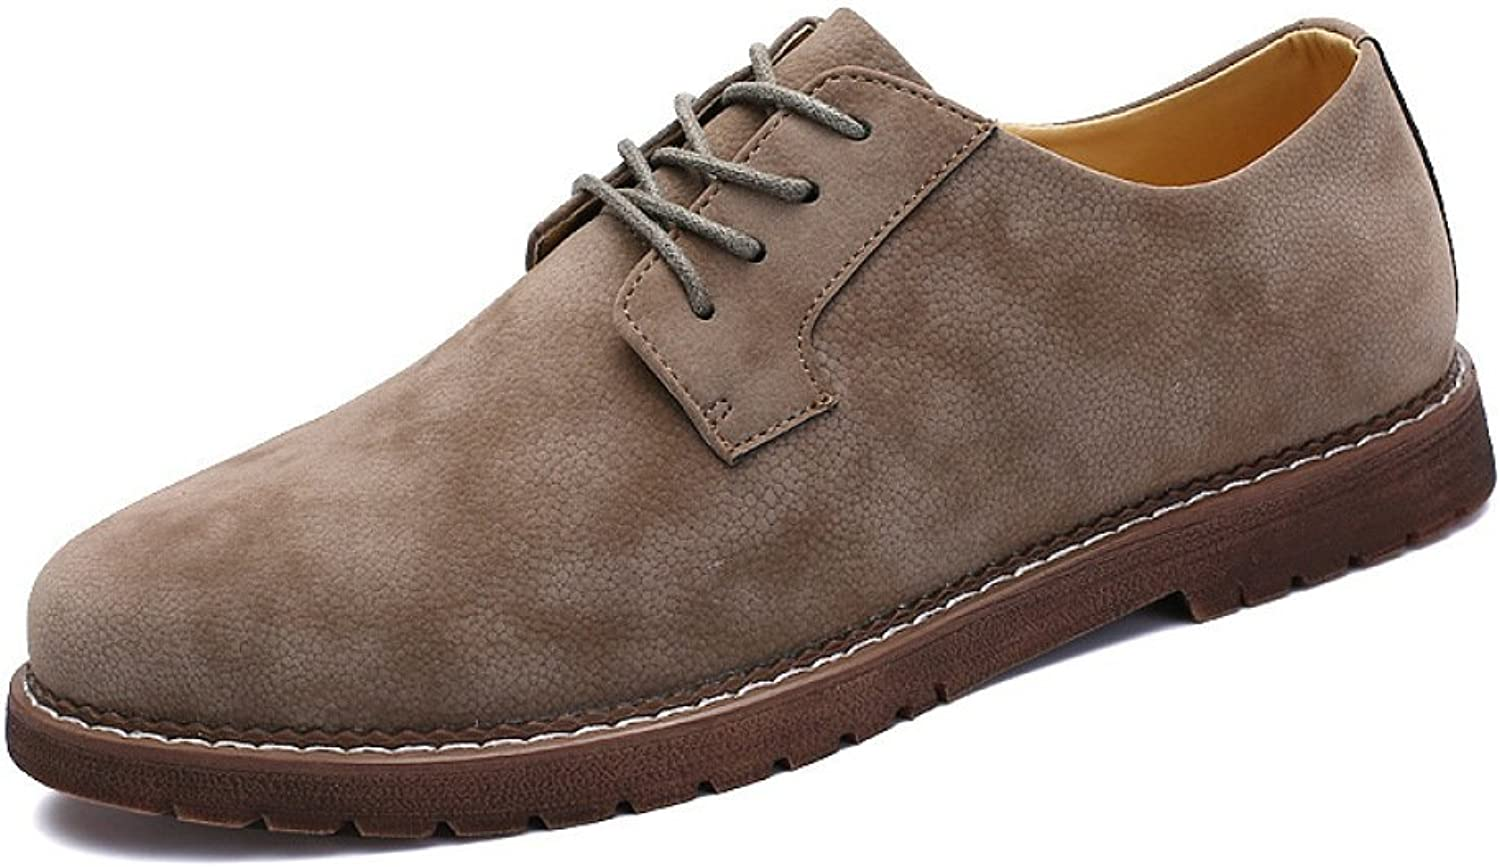 ZPFDY Men Business Casual Korean Fashion British Retro Four Seasons Youth Lace Leather shoes